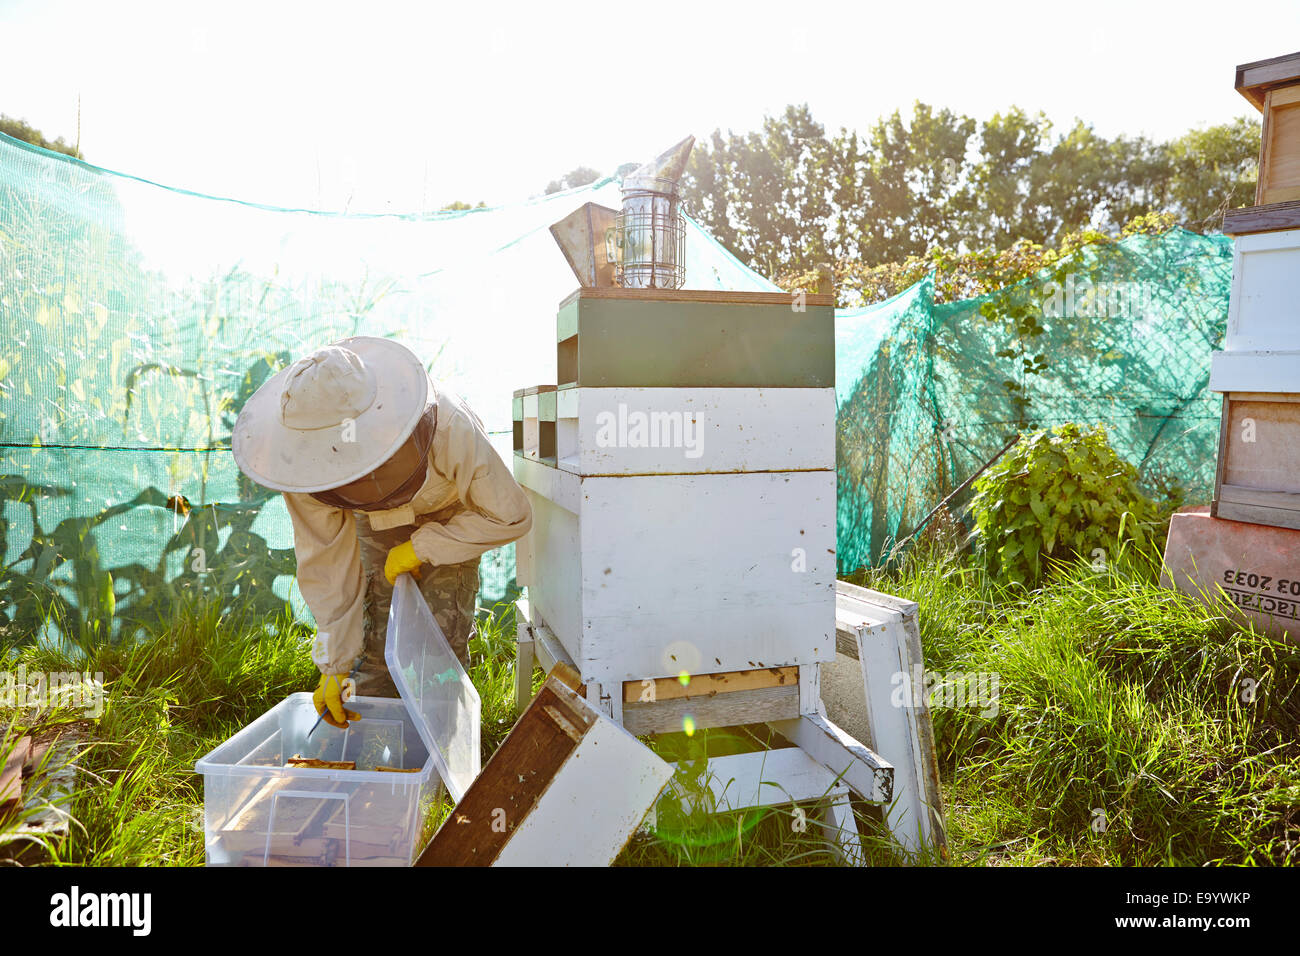 Female beekeeper putting honeycomb trays into plastic container on city allotment - Stock Image